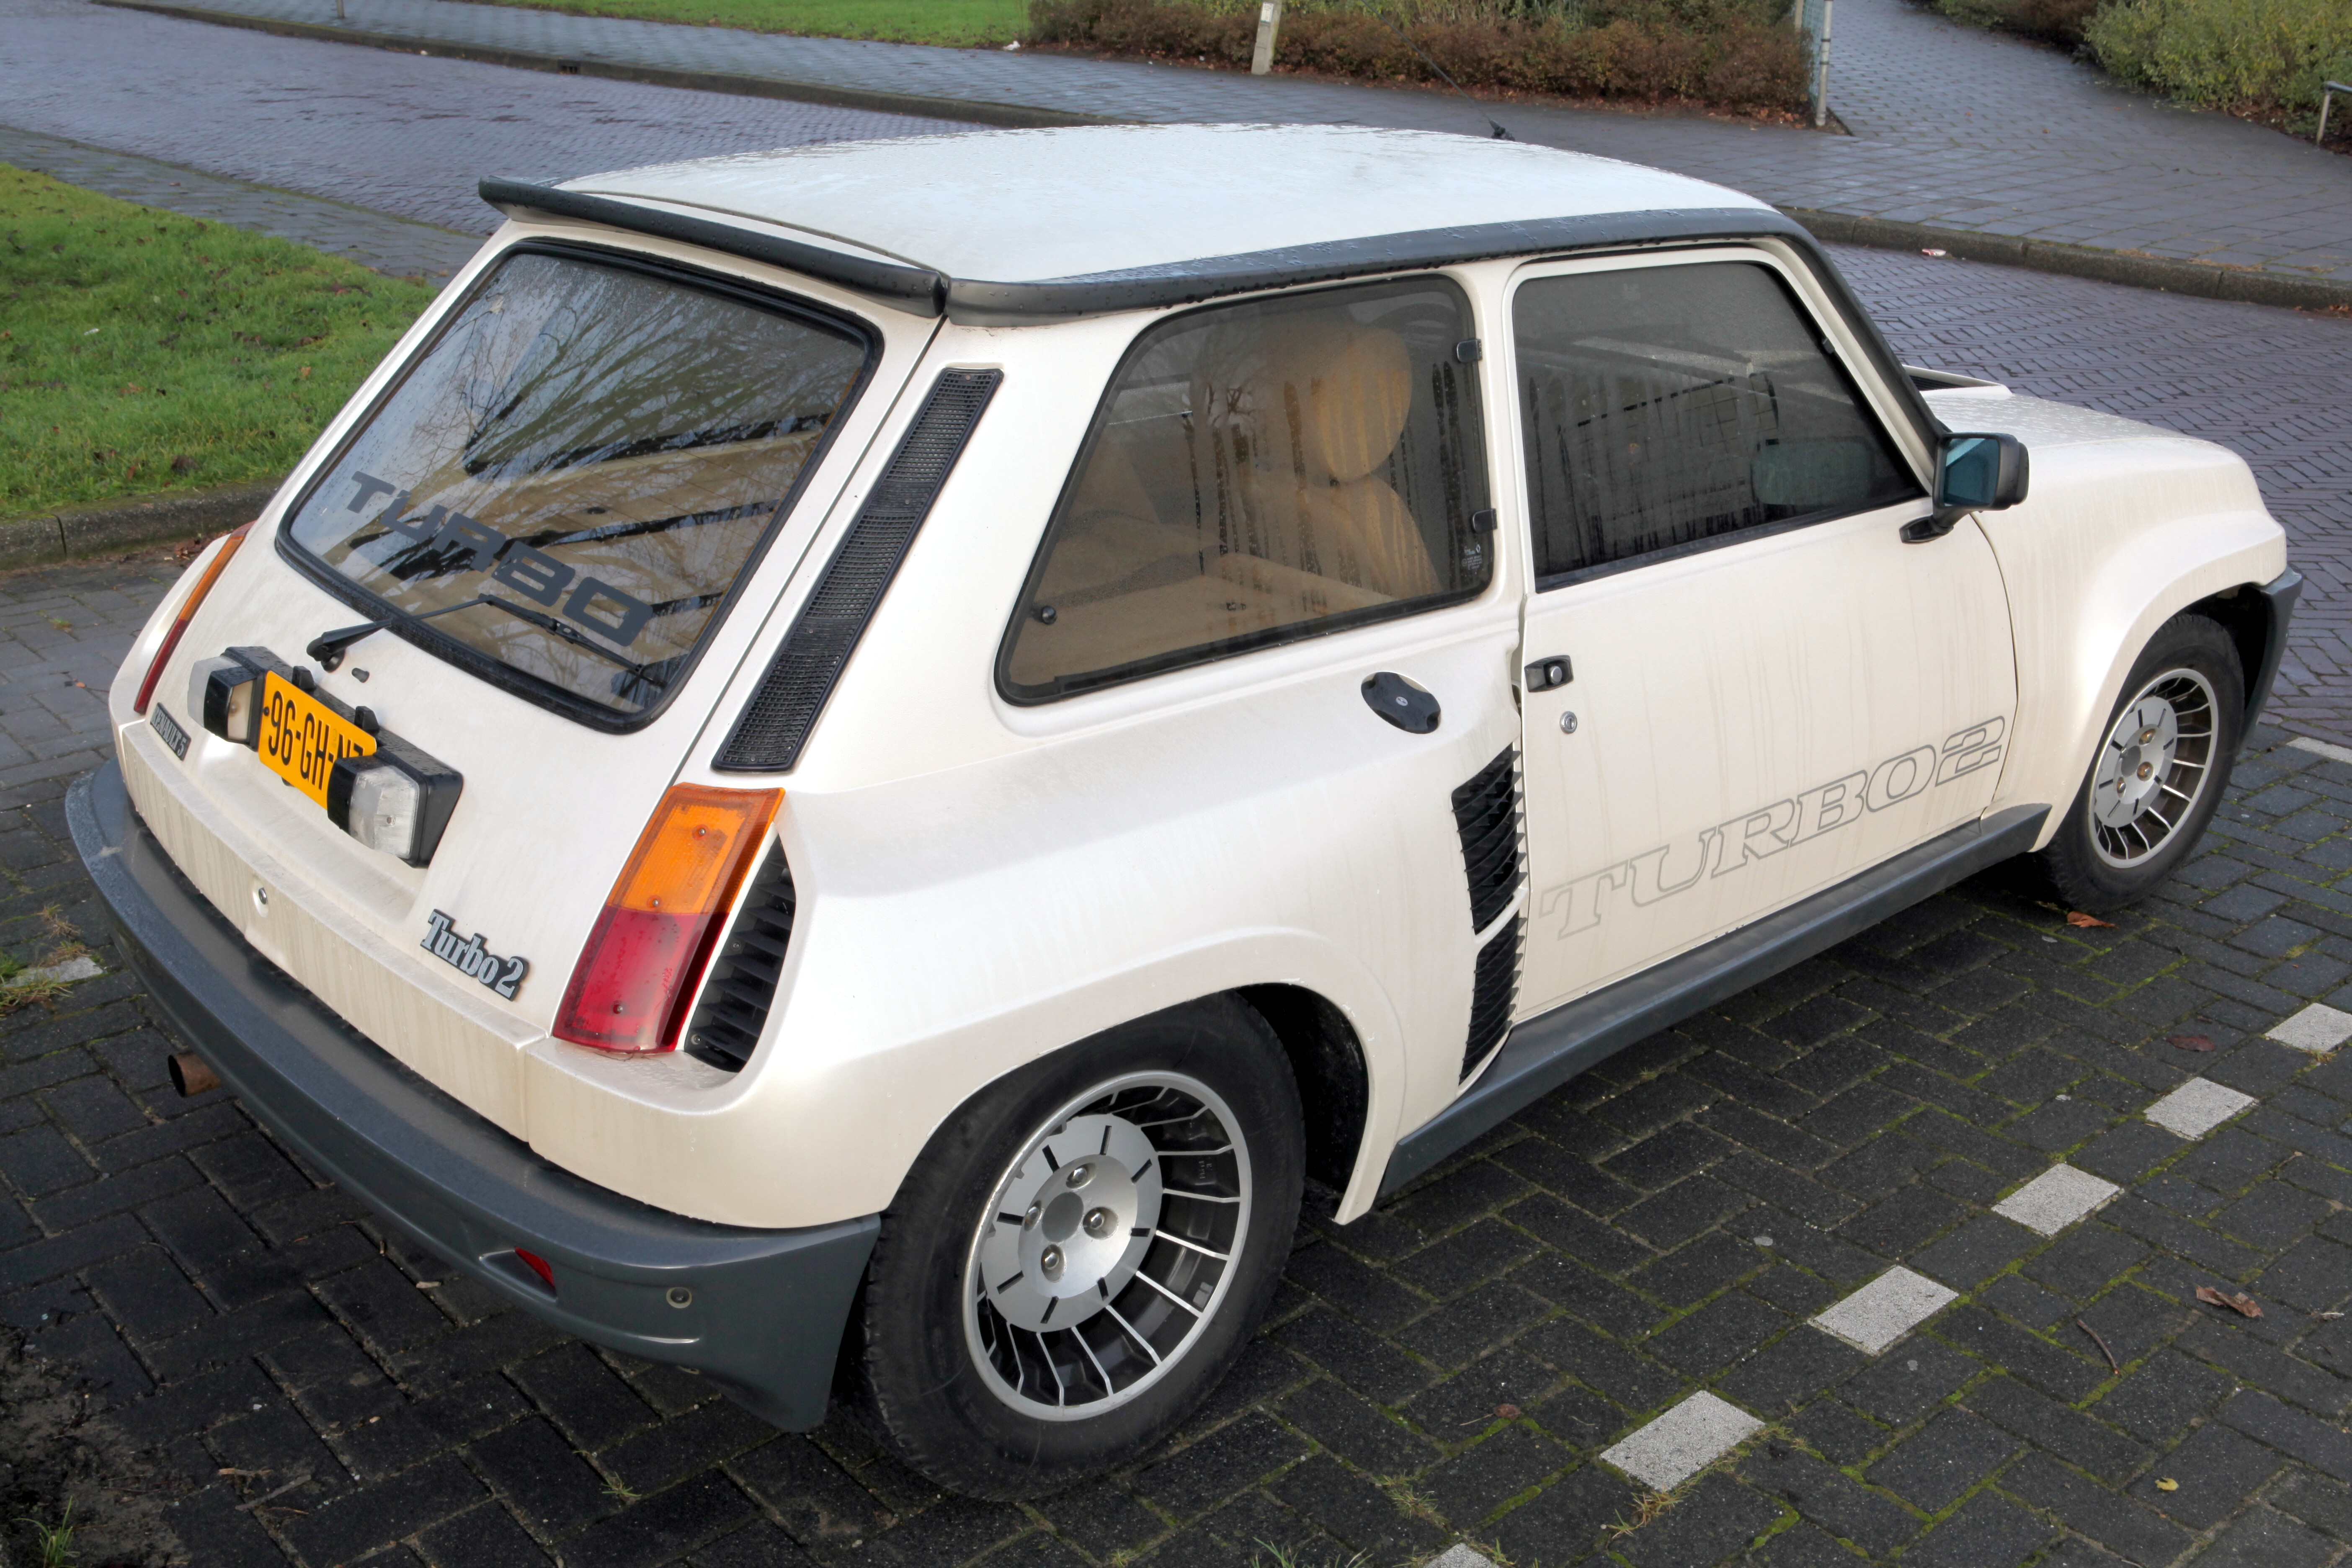 file renault 5 turbo ii flickr joost j bakker wikimedia commons. Black Bedroom Furniture Sets. Home Design Ideas